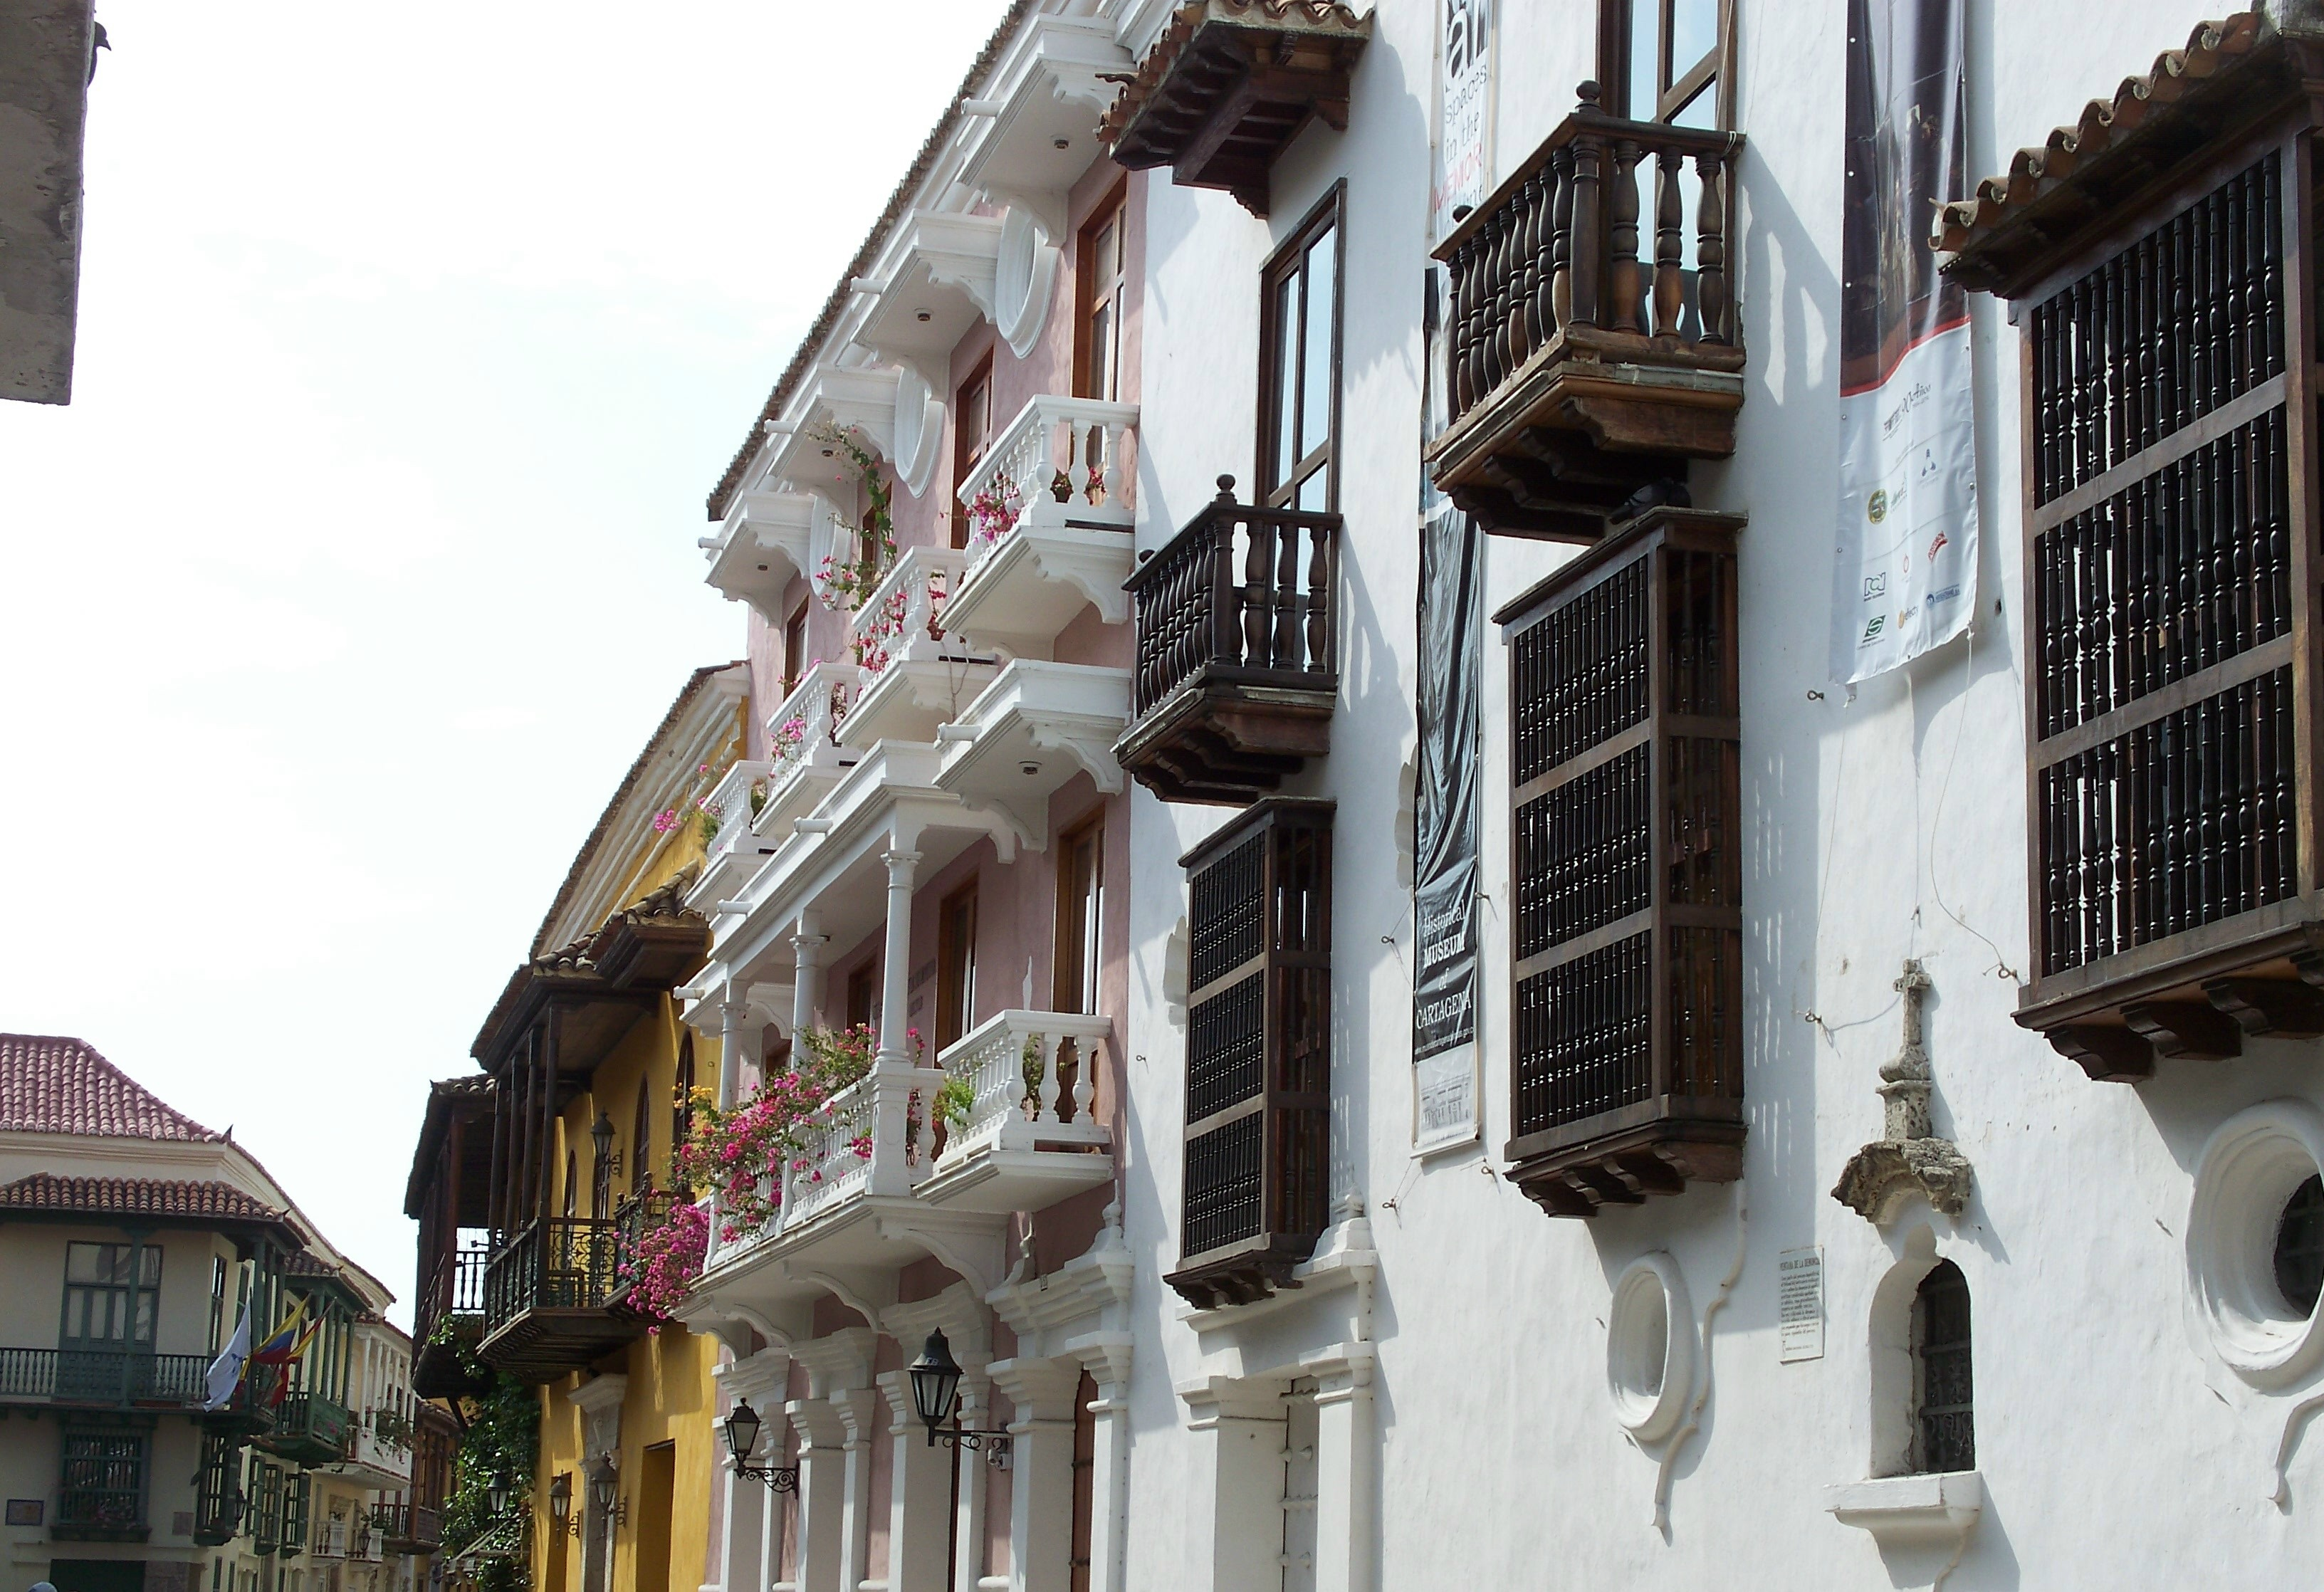 The balconies of Cartagena are a particular delight—a neverending series of variations on a theme.